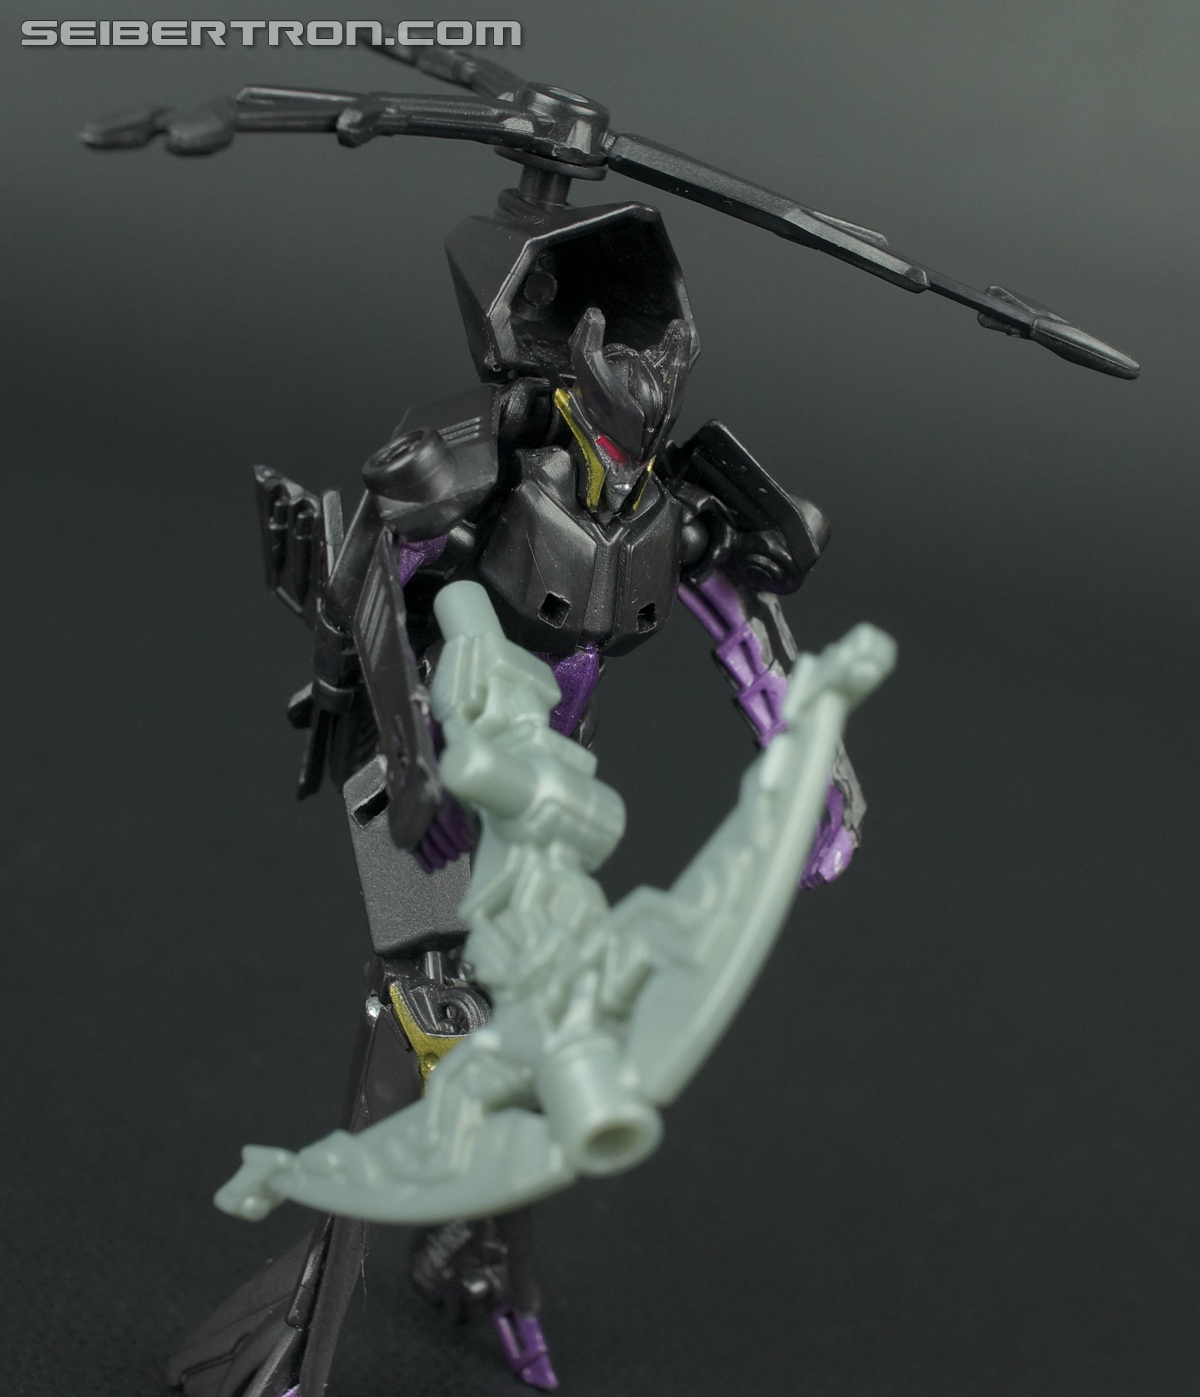 Transformers Prime Beast Hunters Cyberverse Airachnid (Image #77 of 93)